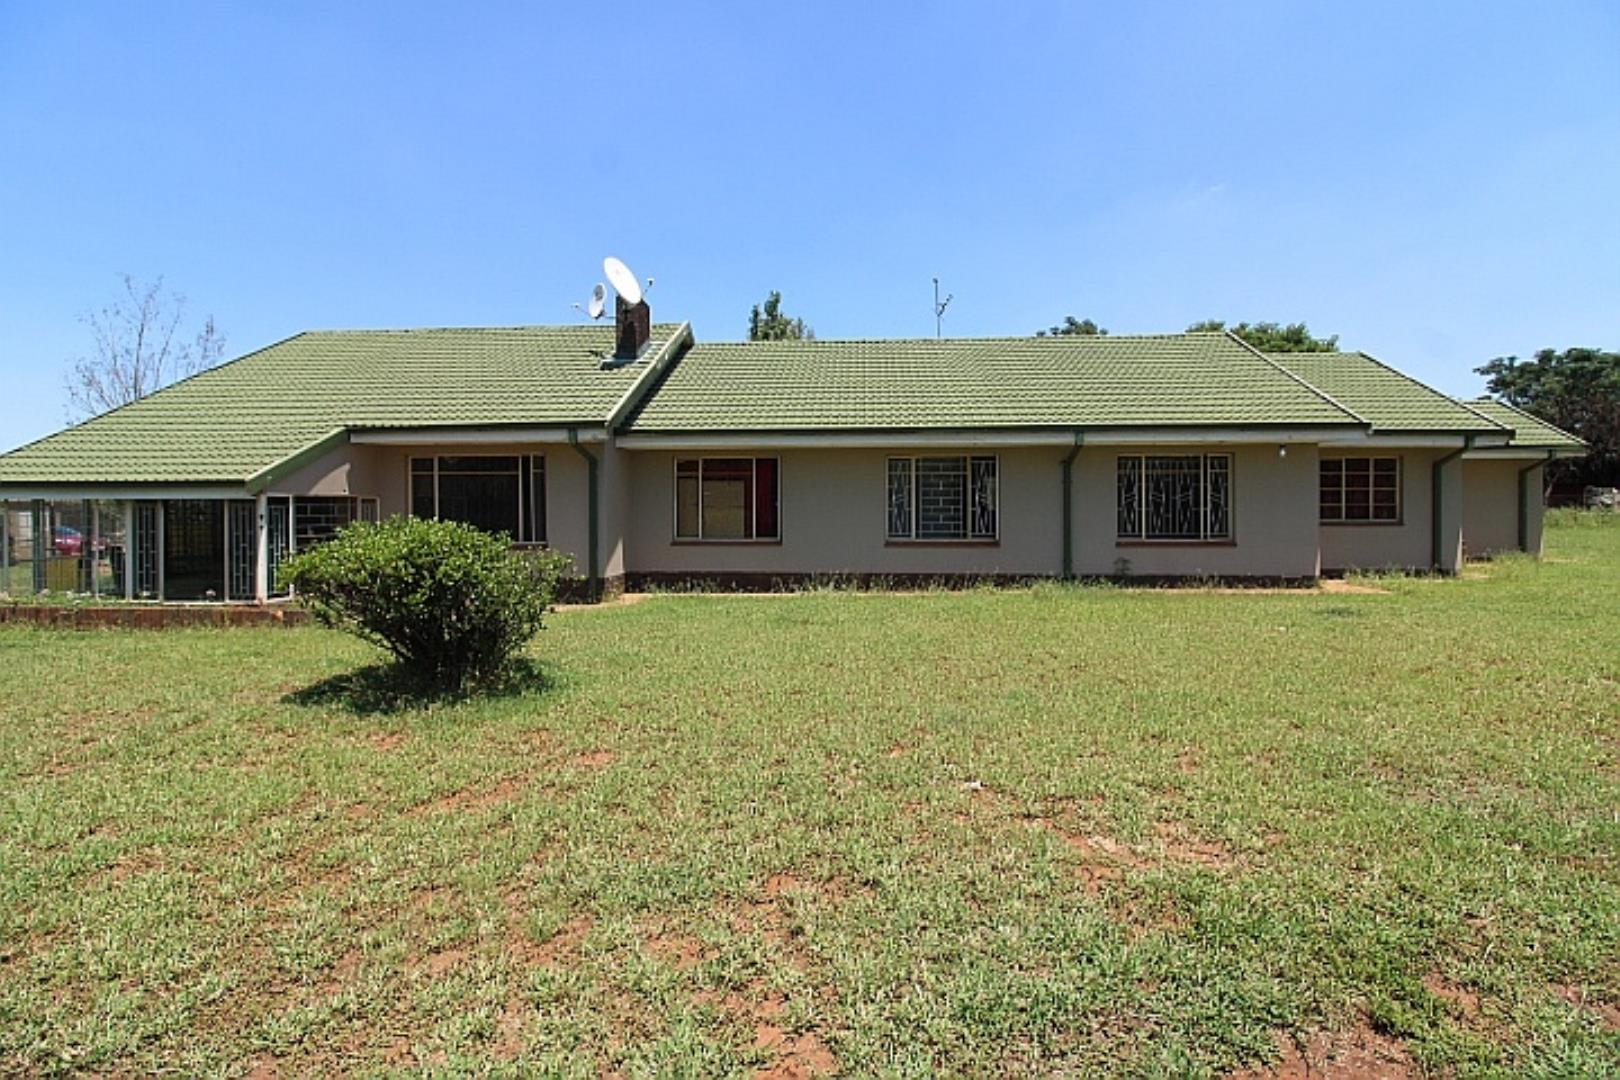 3 Bedroom House for Sale in Witkop, Meyerton - Gauteng